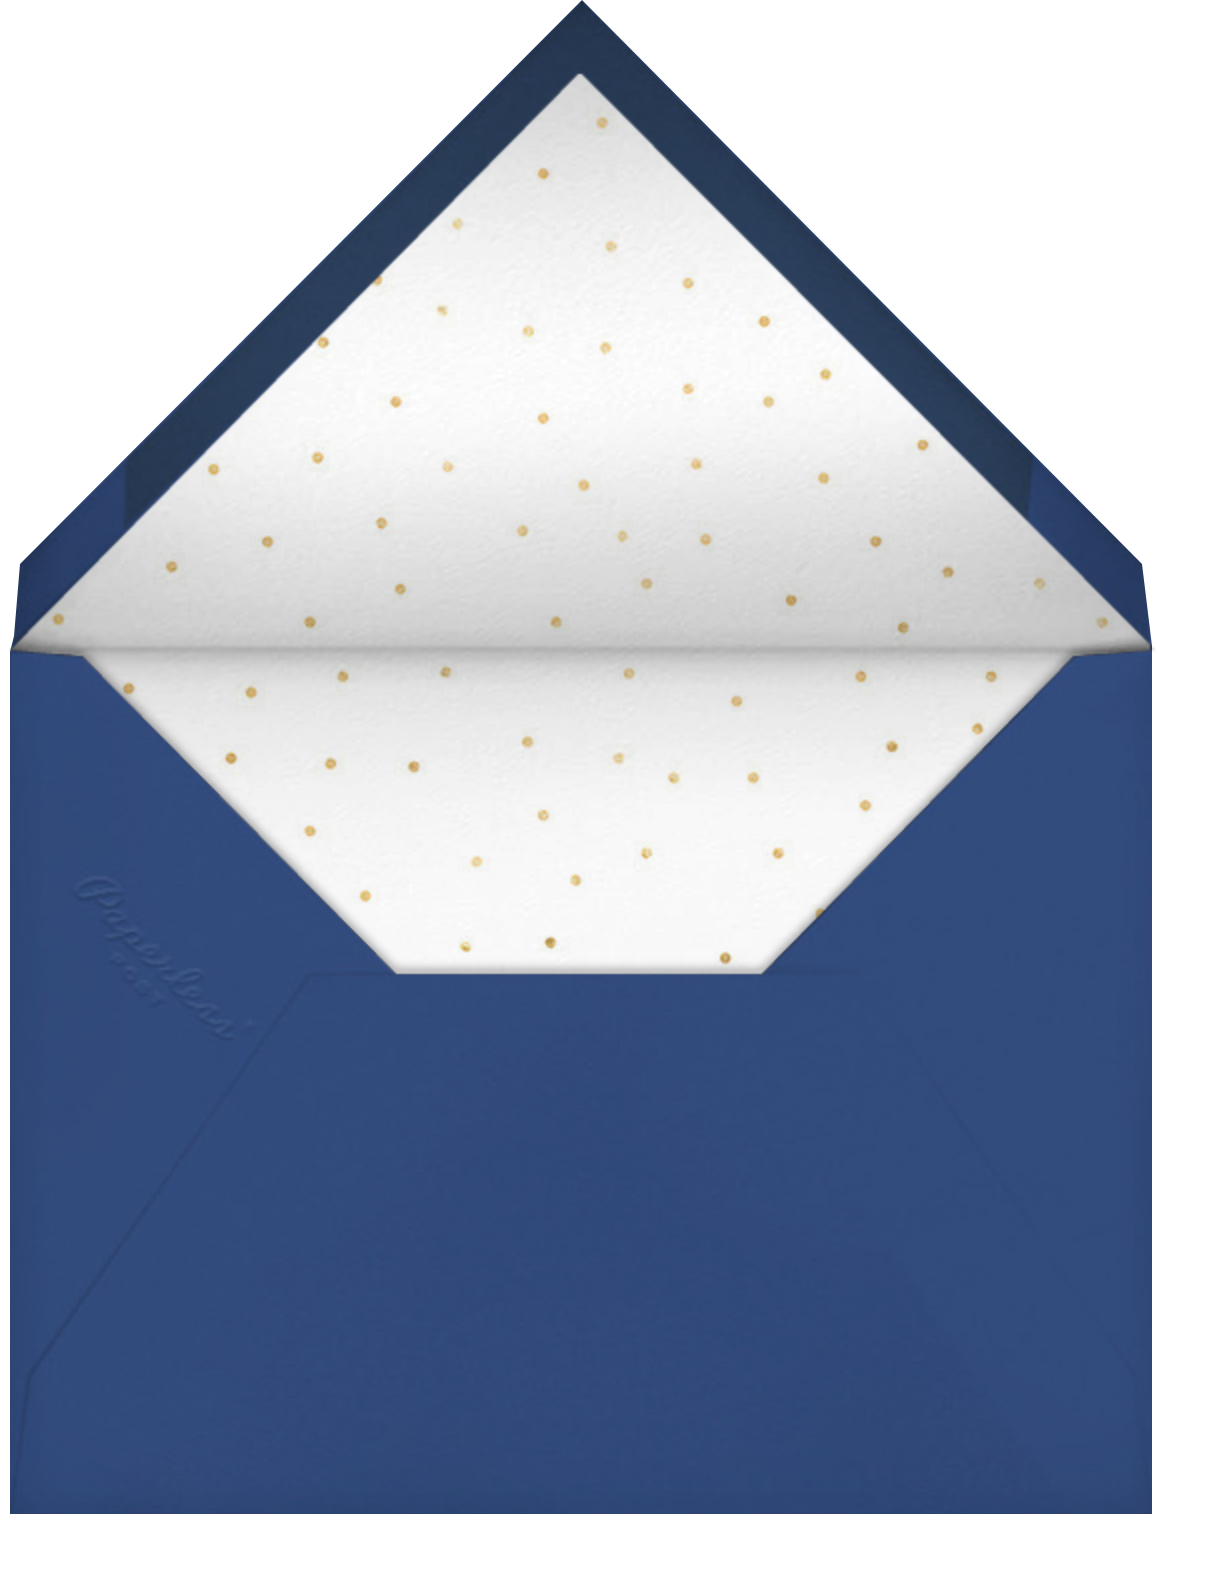 Golden Snow - Dark Blue - Paperless Post - Business holiday cards - envelope back